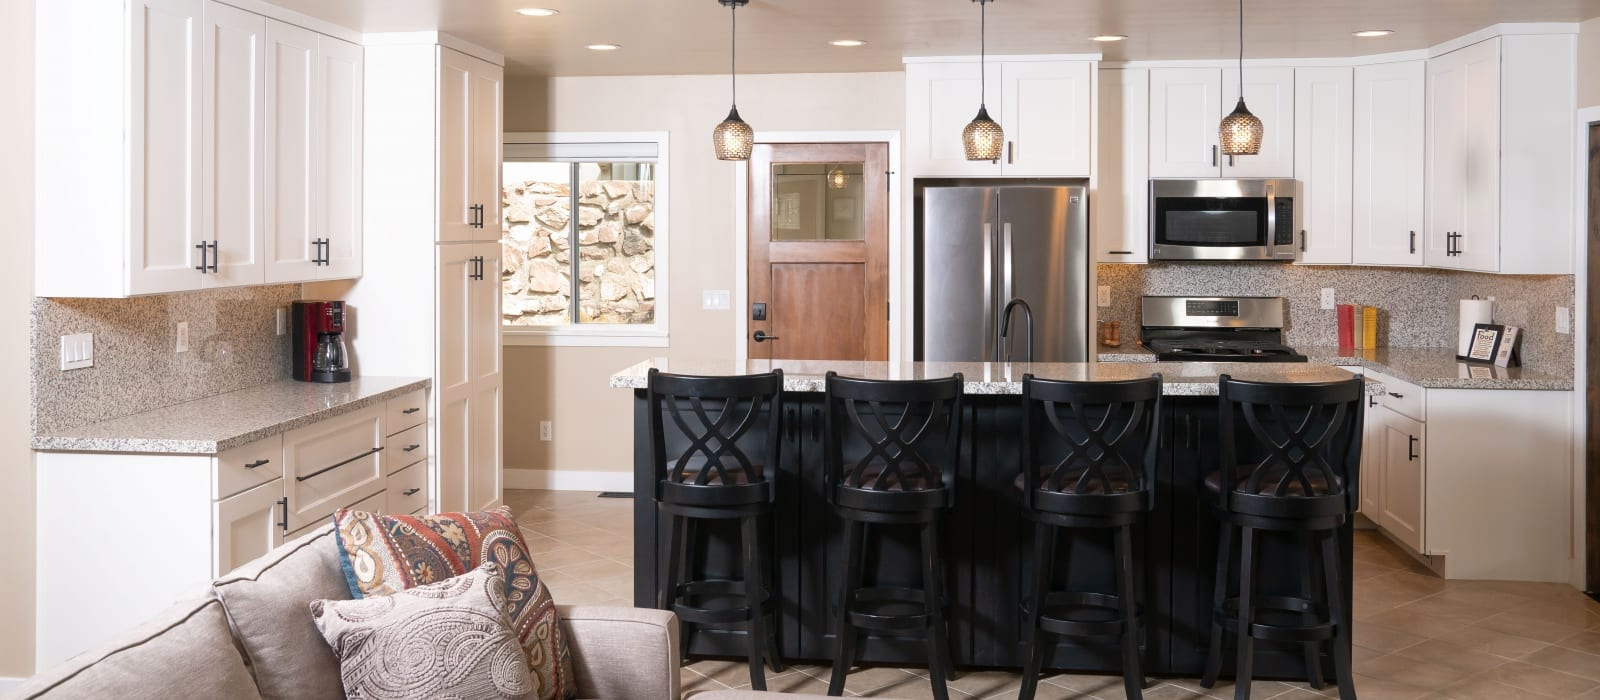 Shaker Style Cabinets For Your Prescott Kitchen Remodel